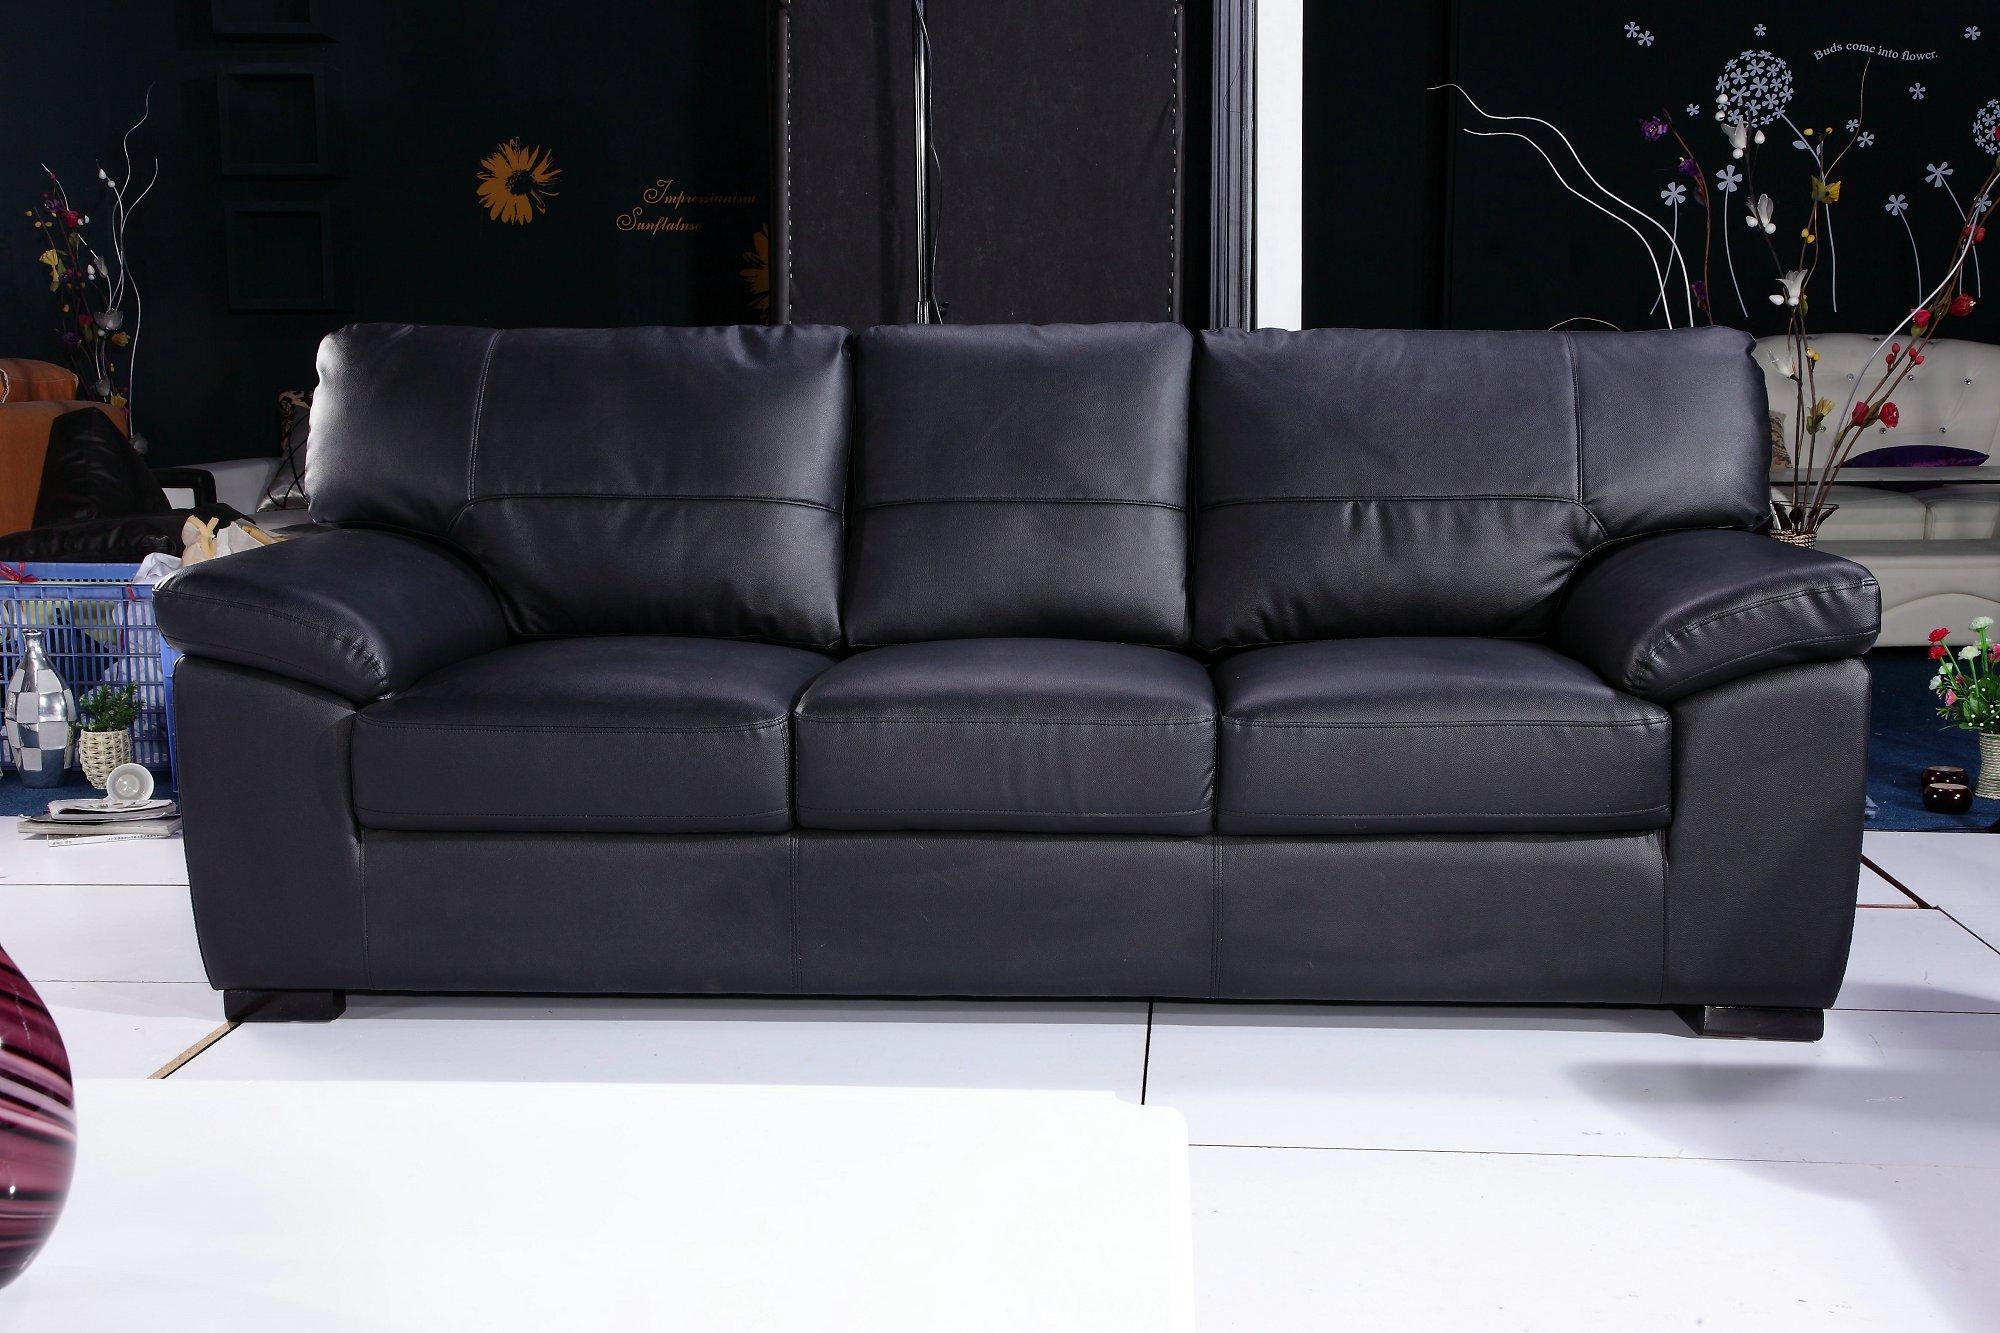 Three Seat Couch Adorable Montclair 3 Seater Sofa | Crate And Intended For Modern 3 Seater Sofas (Image 20 of 20)